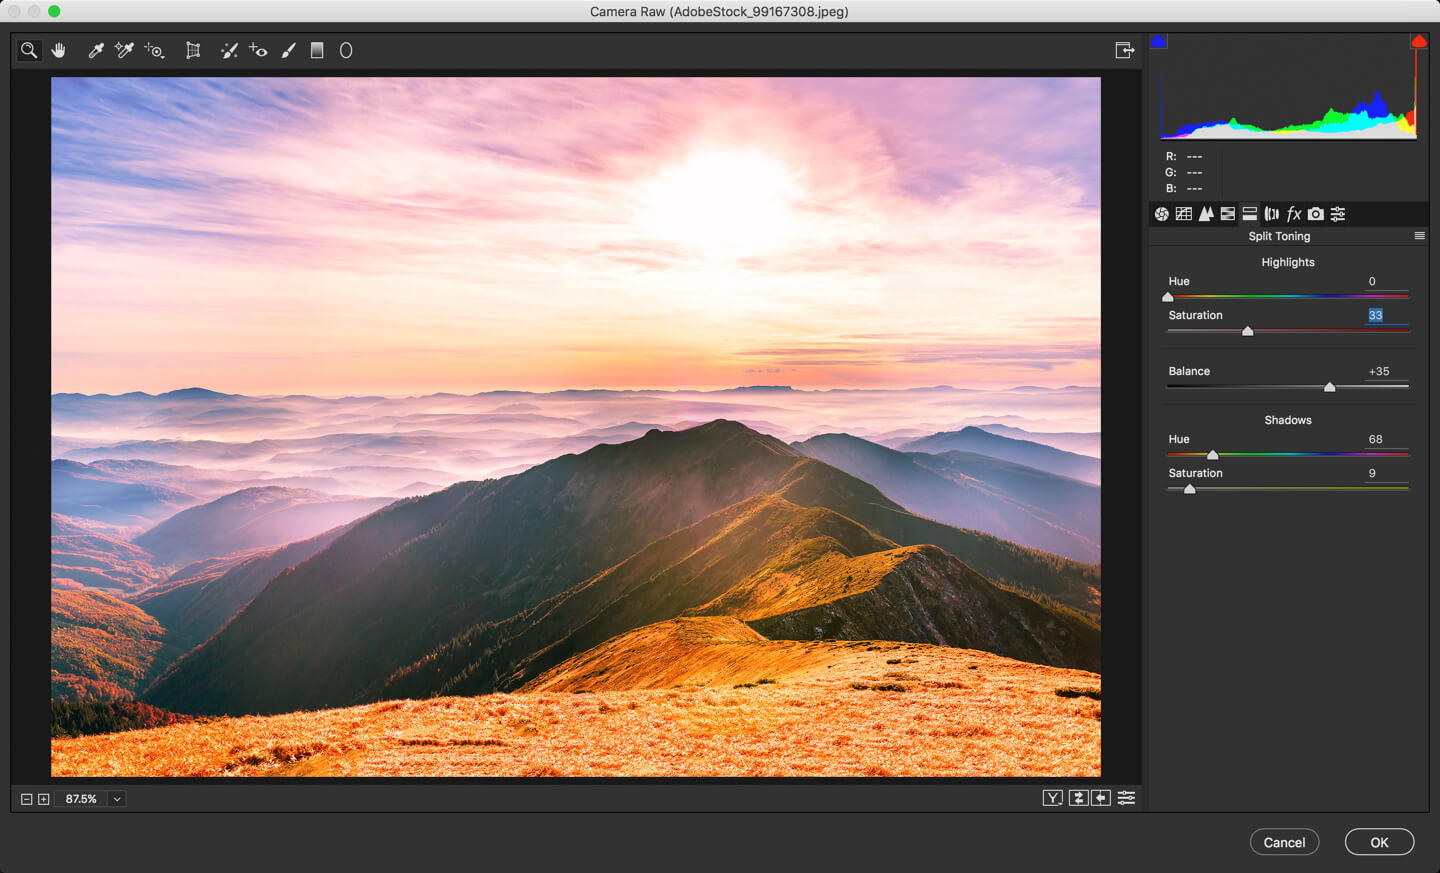 4 - DAY 23 – THE CAMERA RAW FILTER IN PHOTOSHOP: PART 2